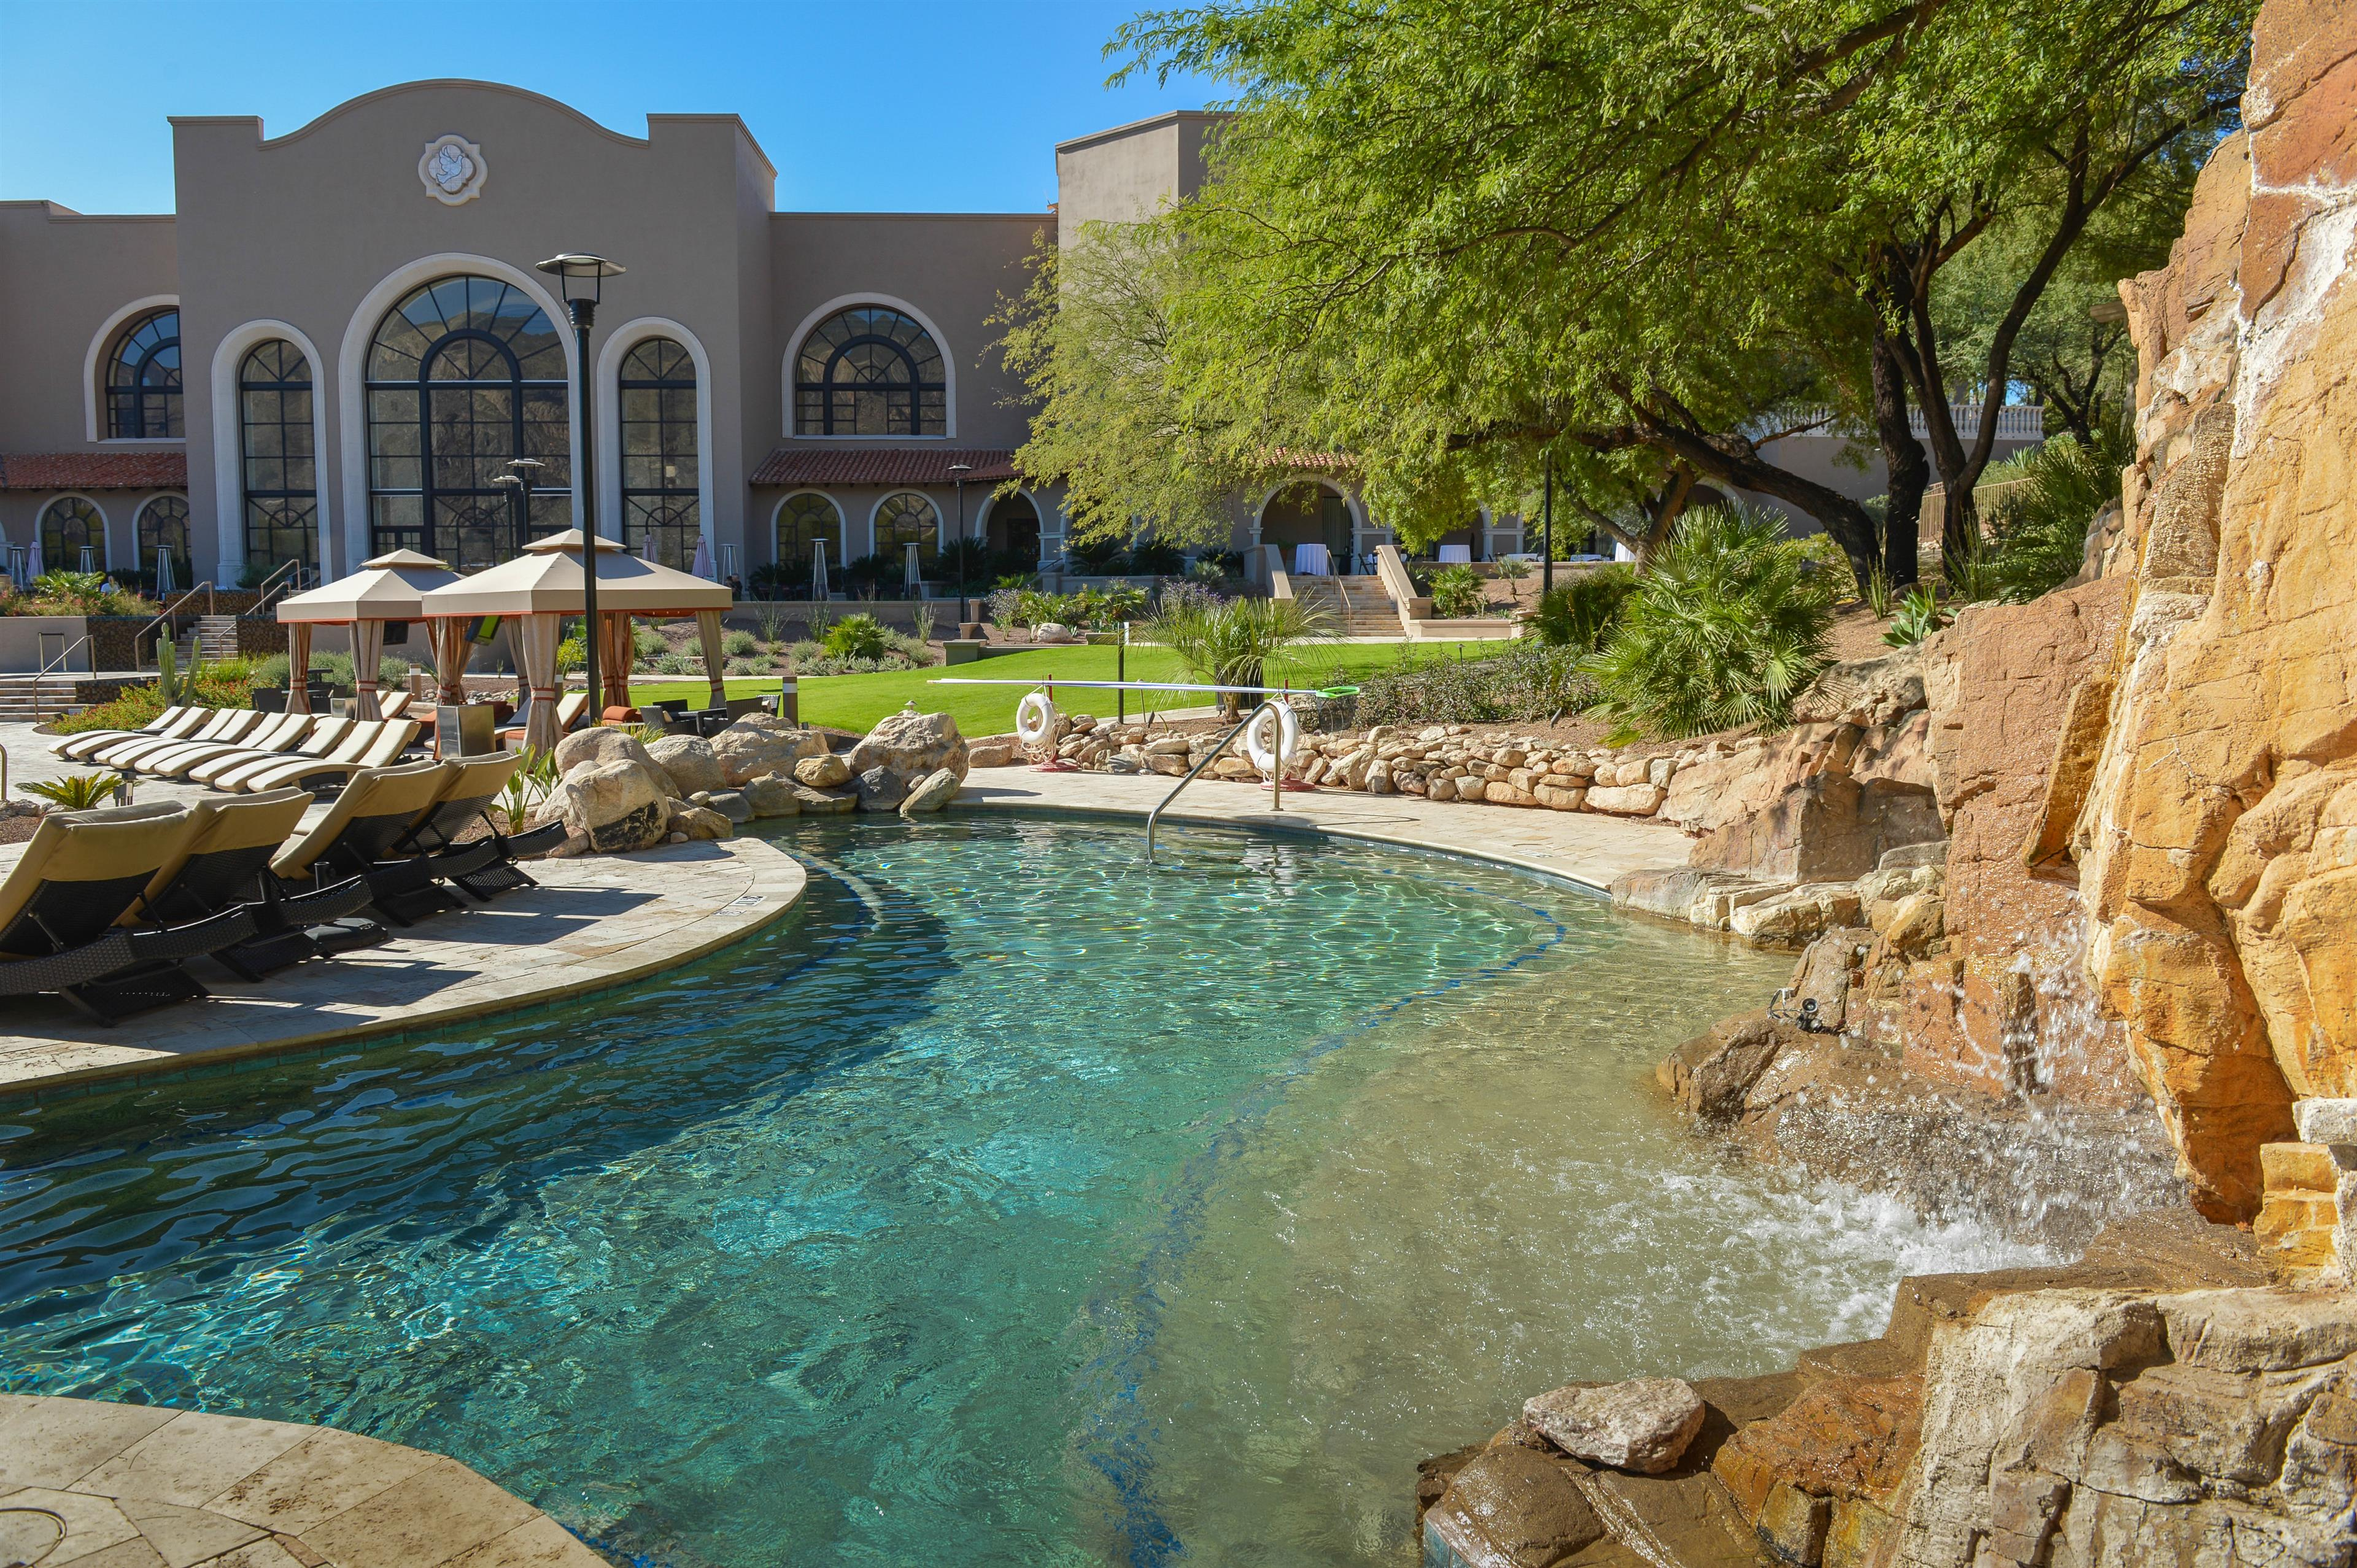 The westin la paloma resort spa coupons near me in for Hotel spa resort near me